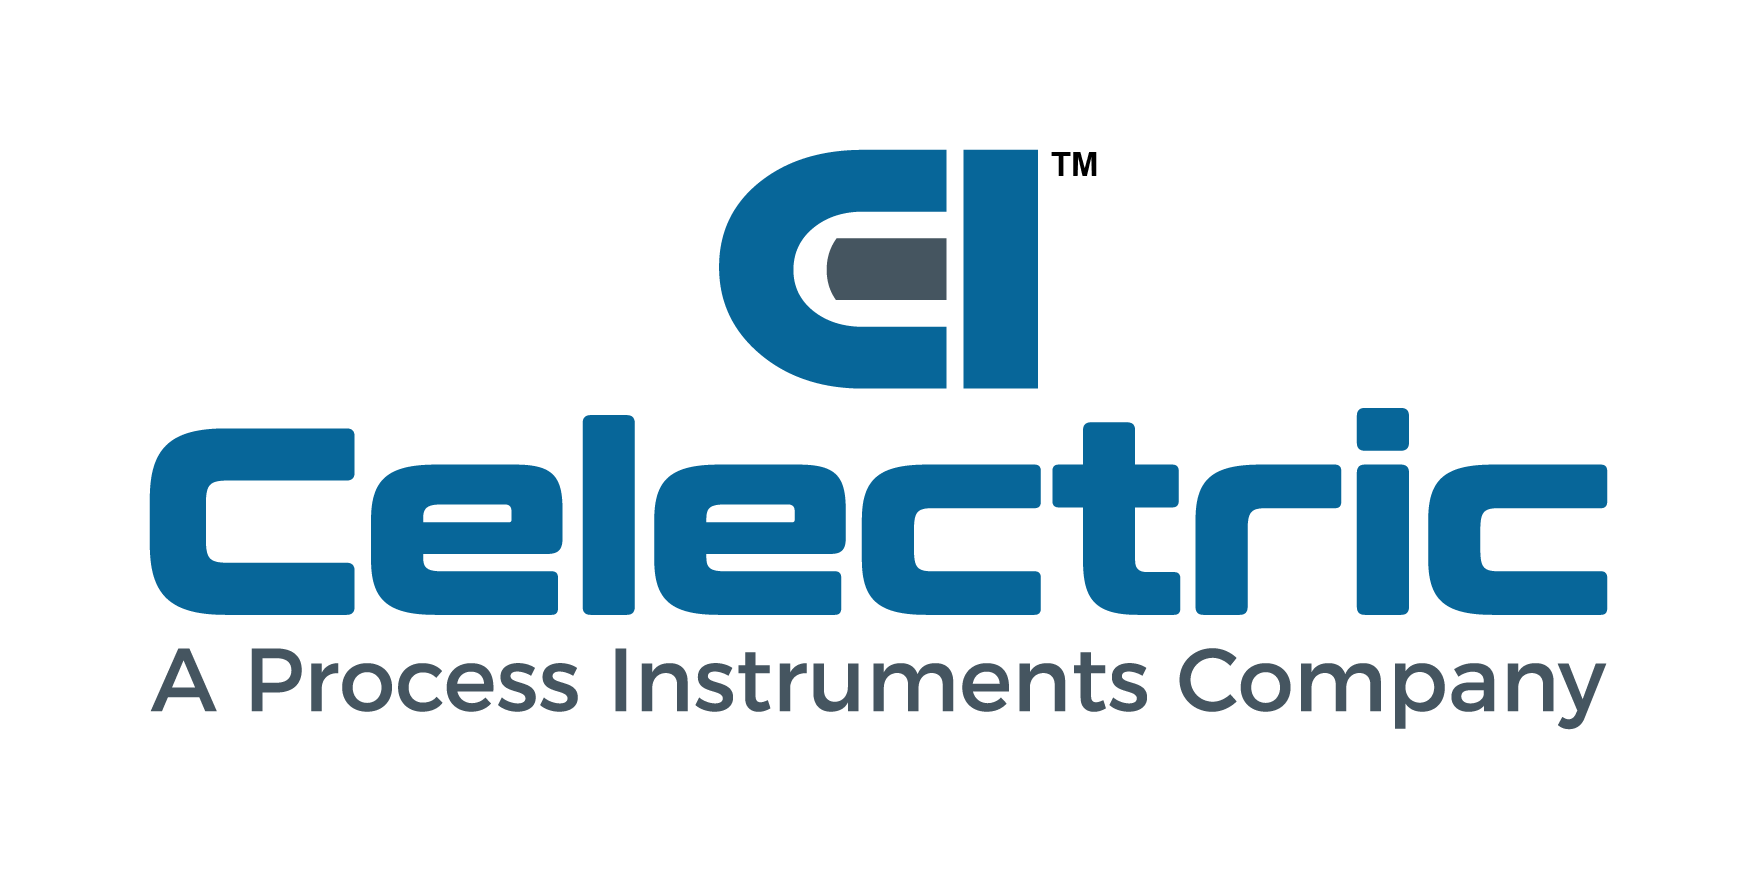 About Celectric, About Us